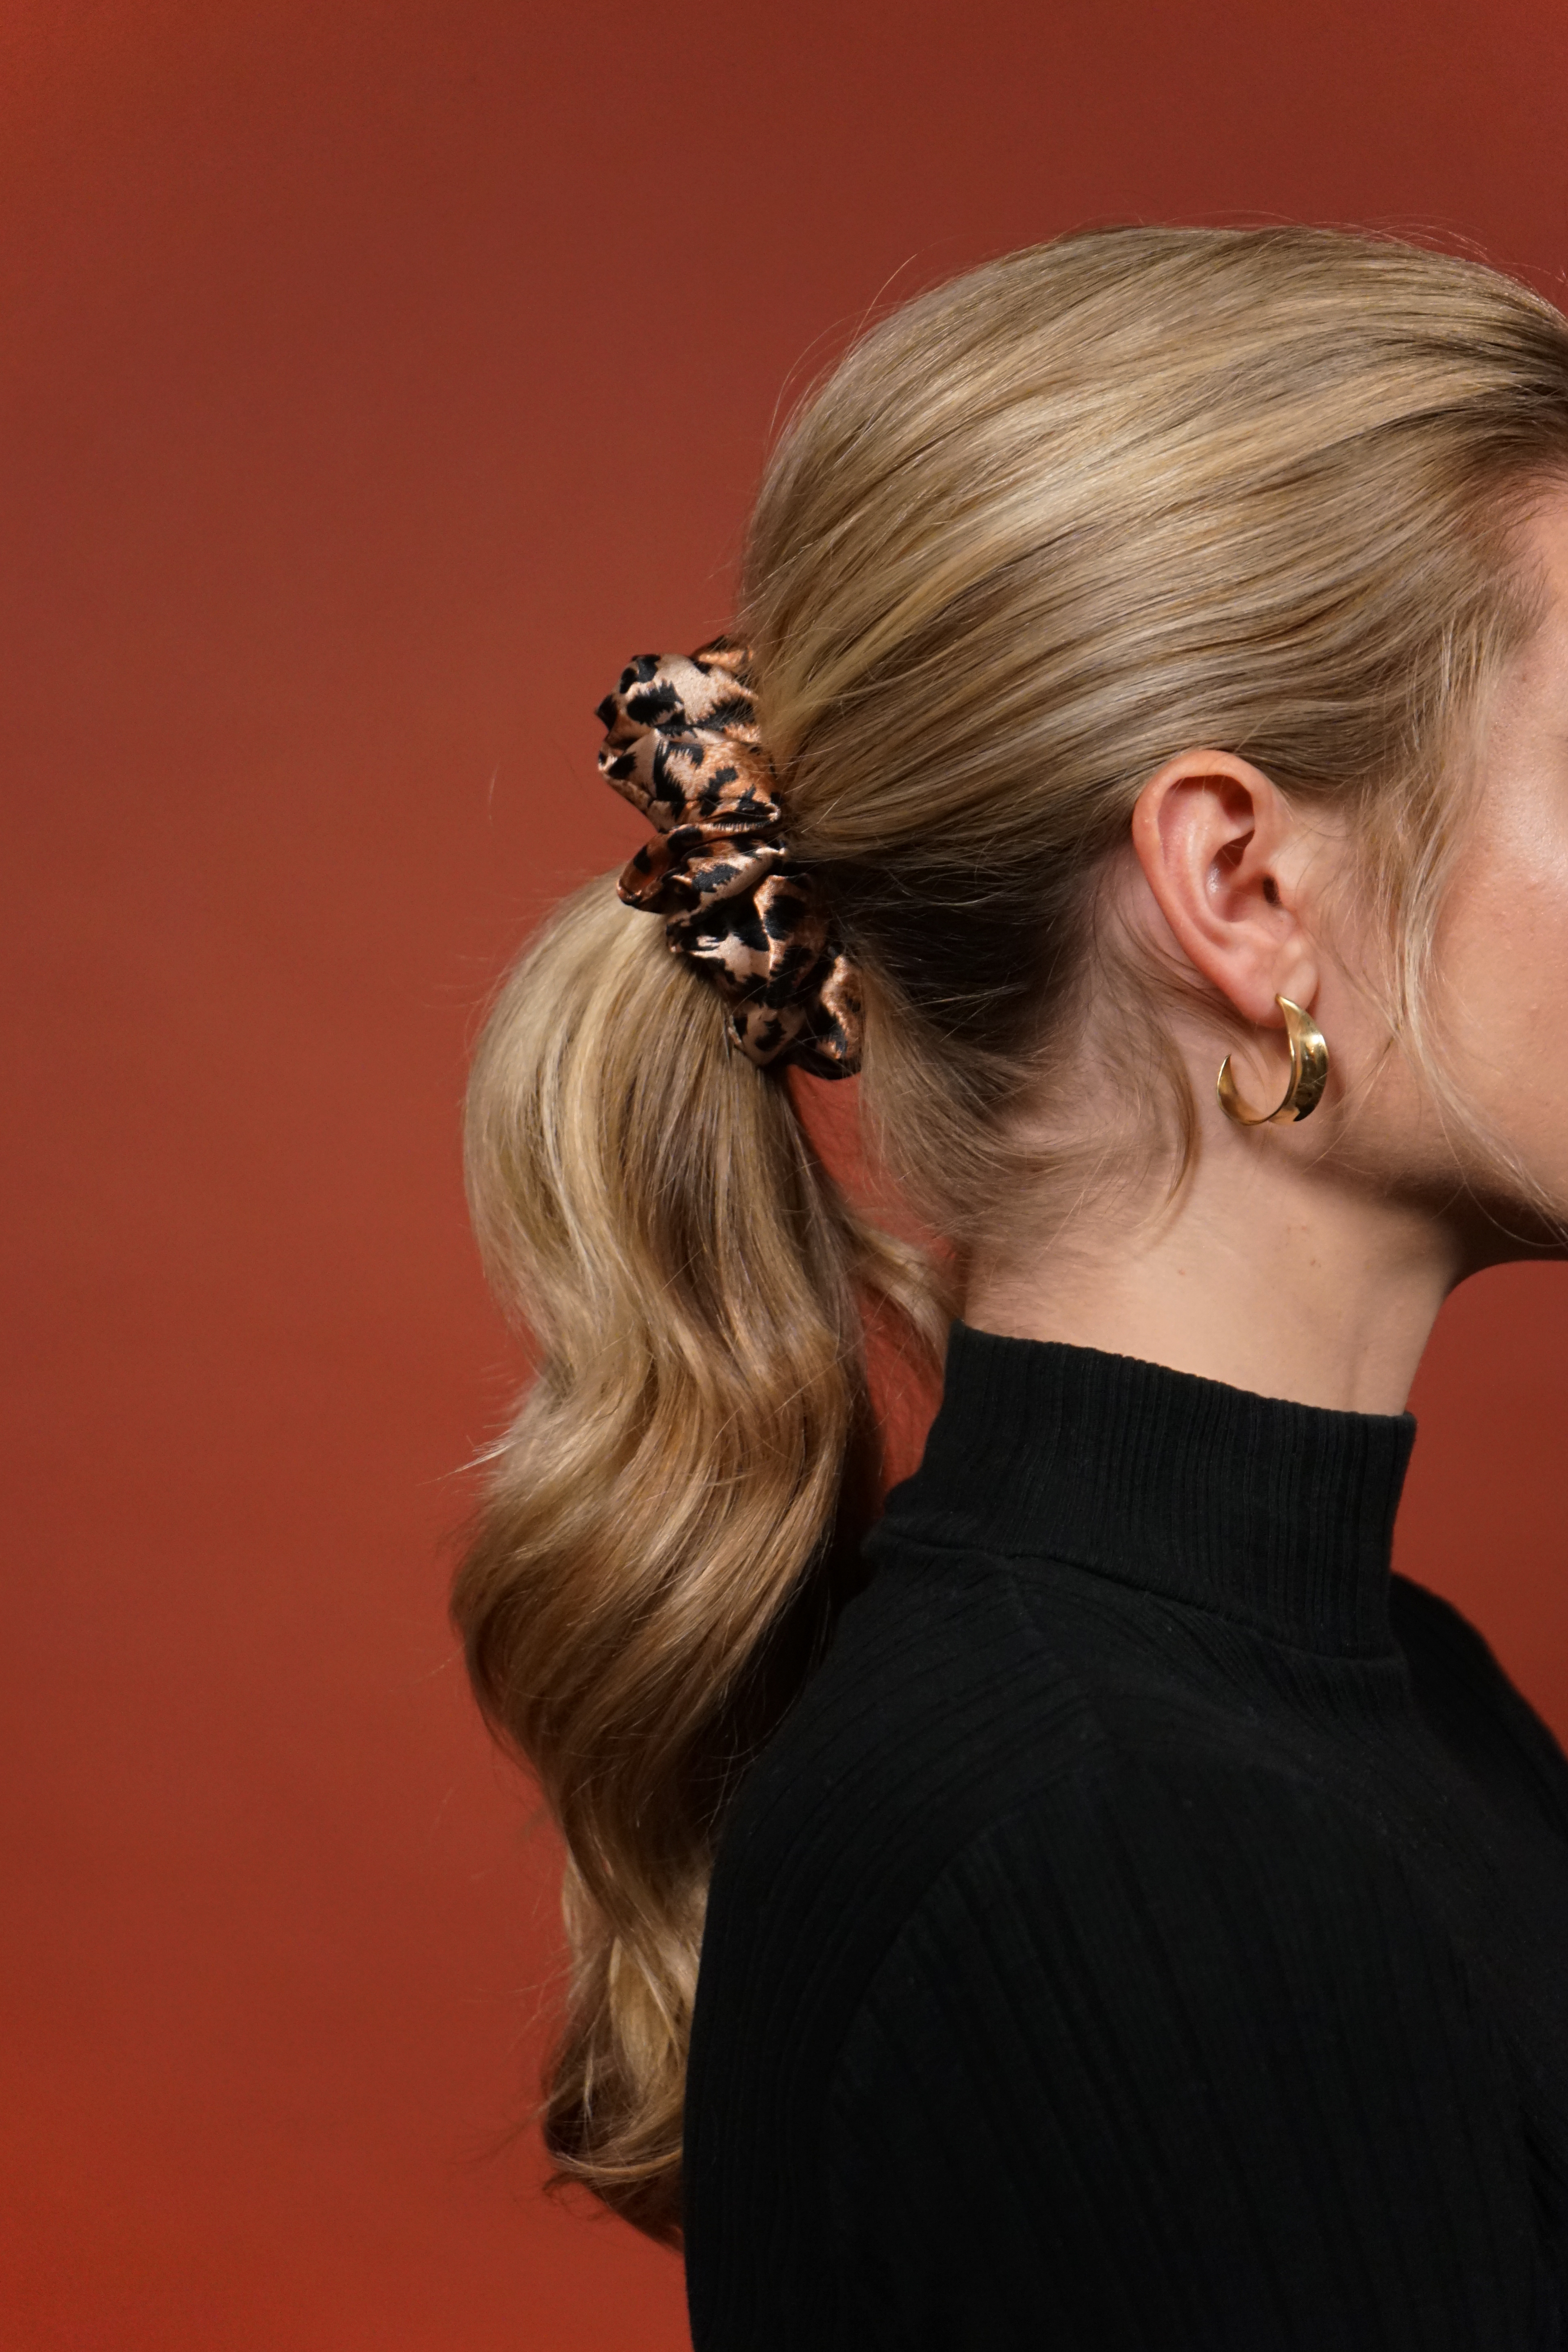 woman with long, blonde hair pulled up in a cheetah scrunchie